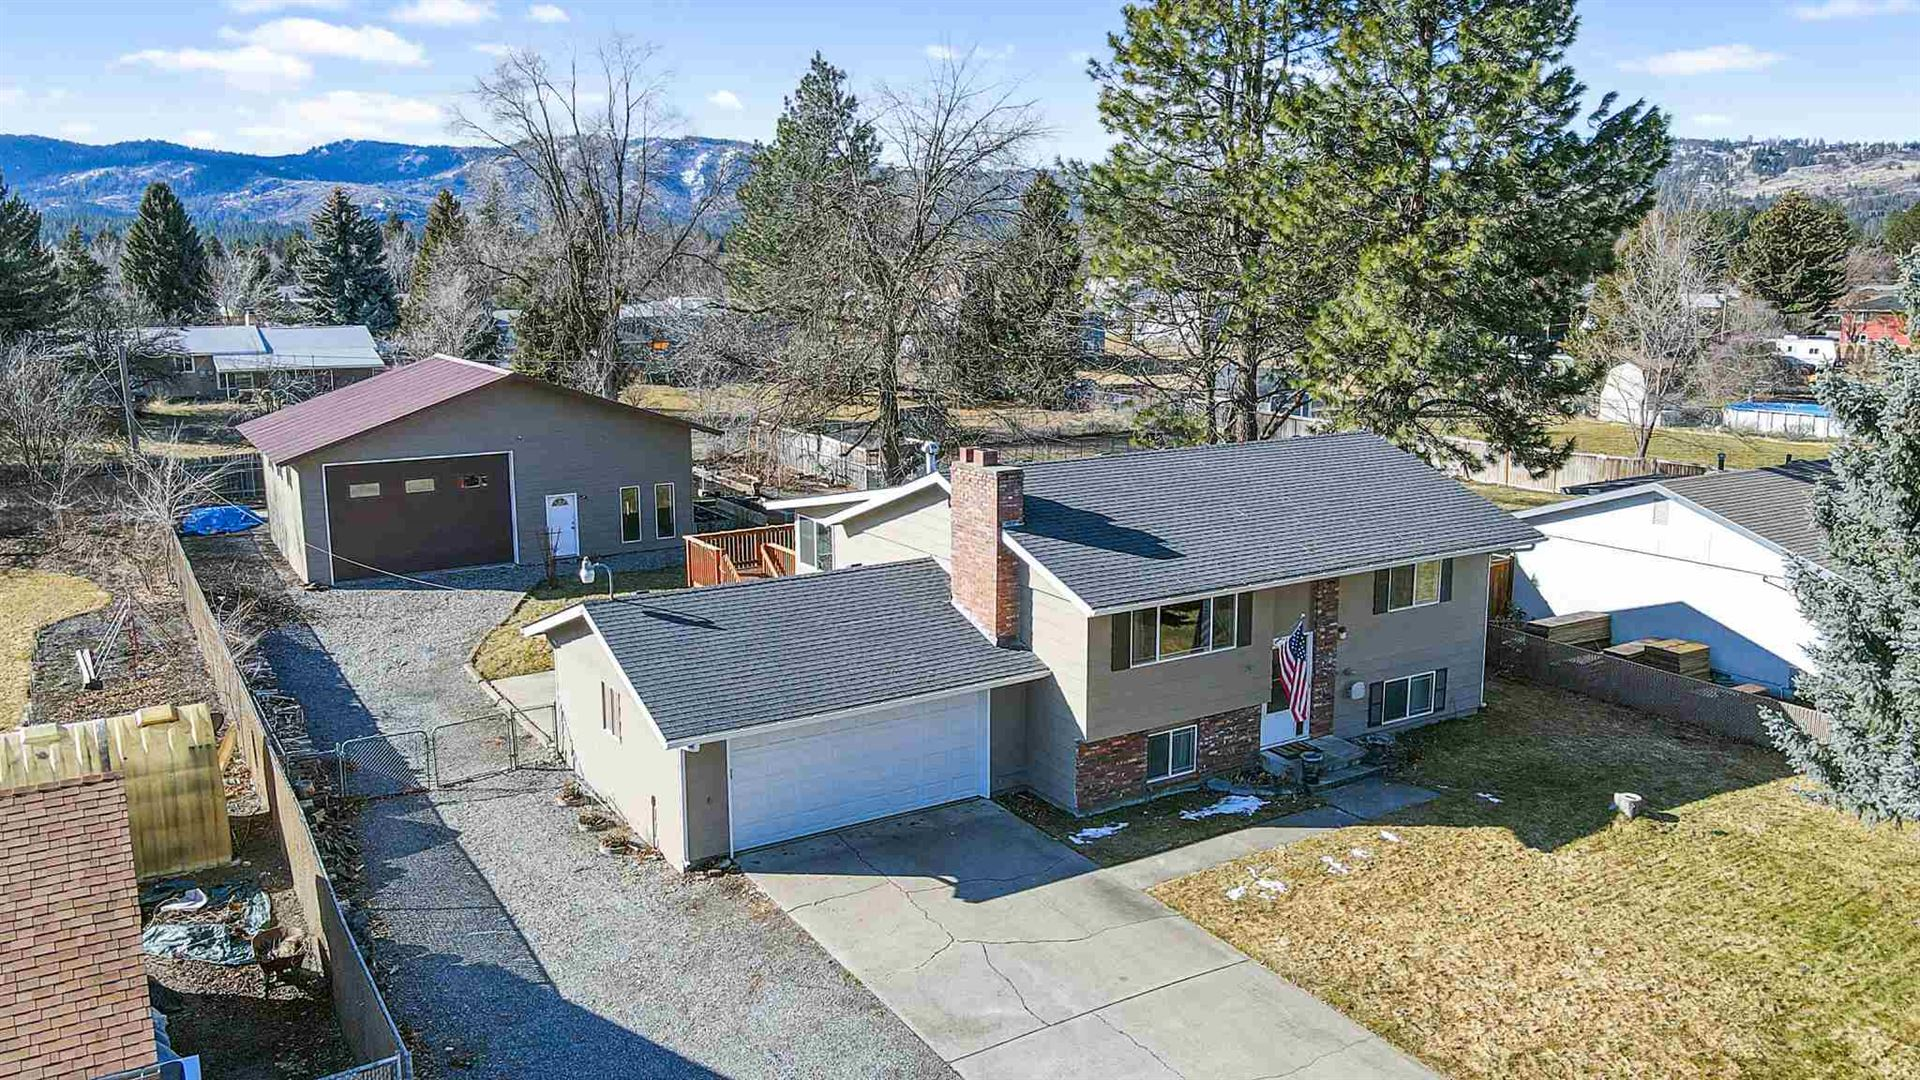 12006 E LENORA Dr, Spokane Valley, WA 99216 - #: 202111874